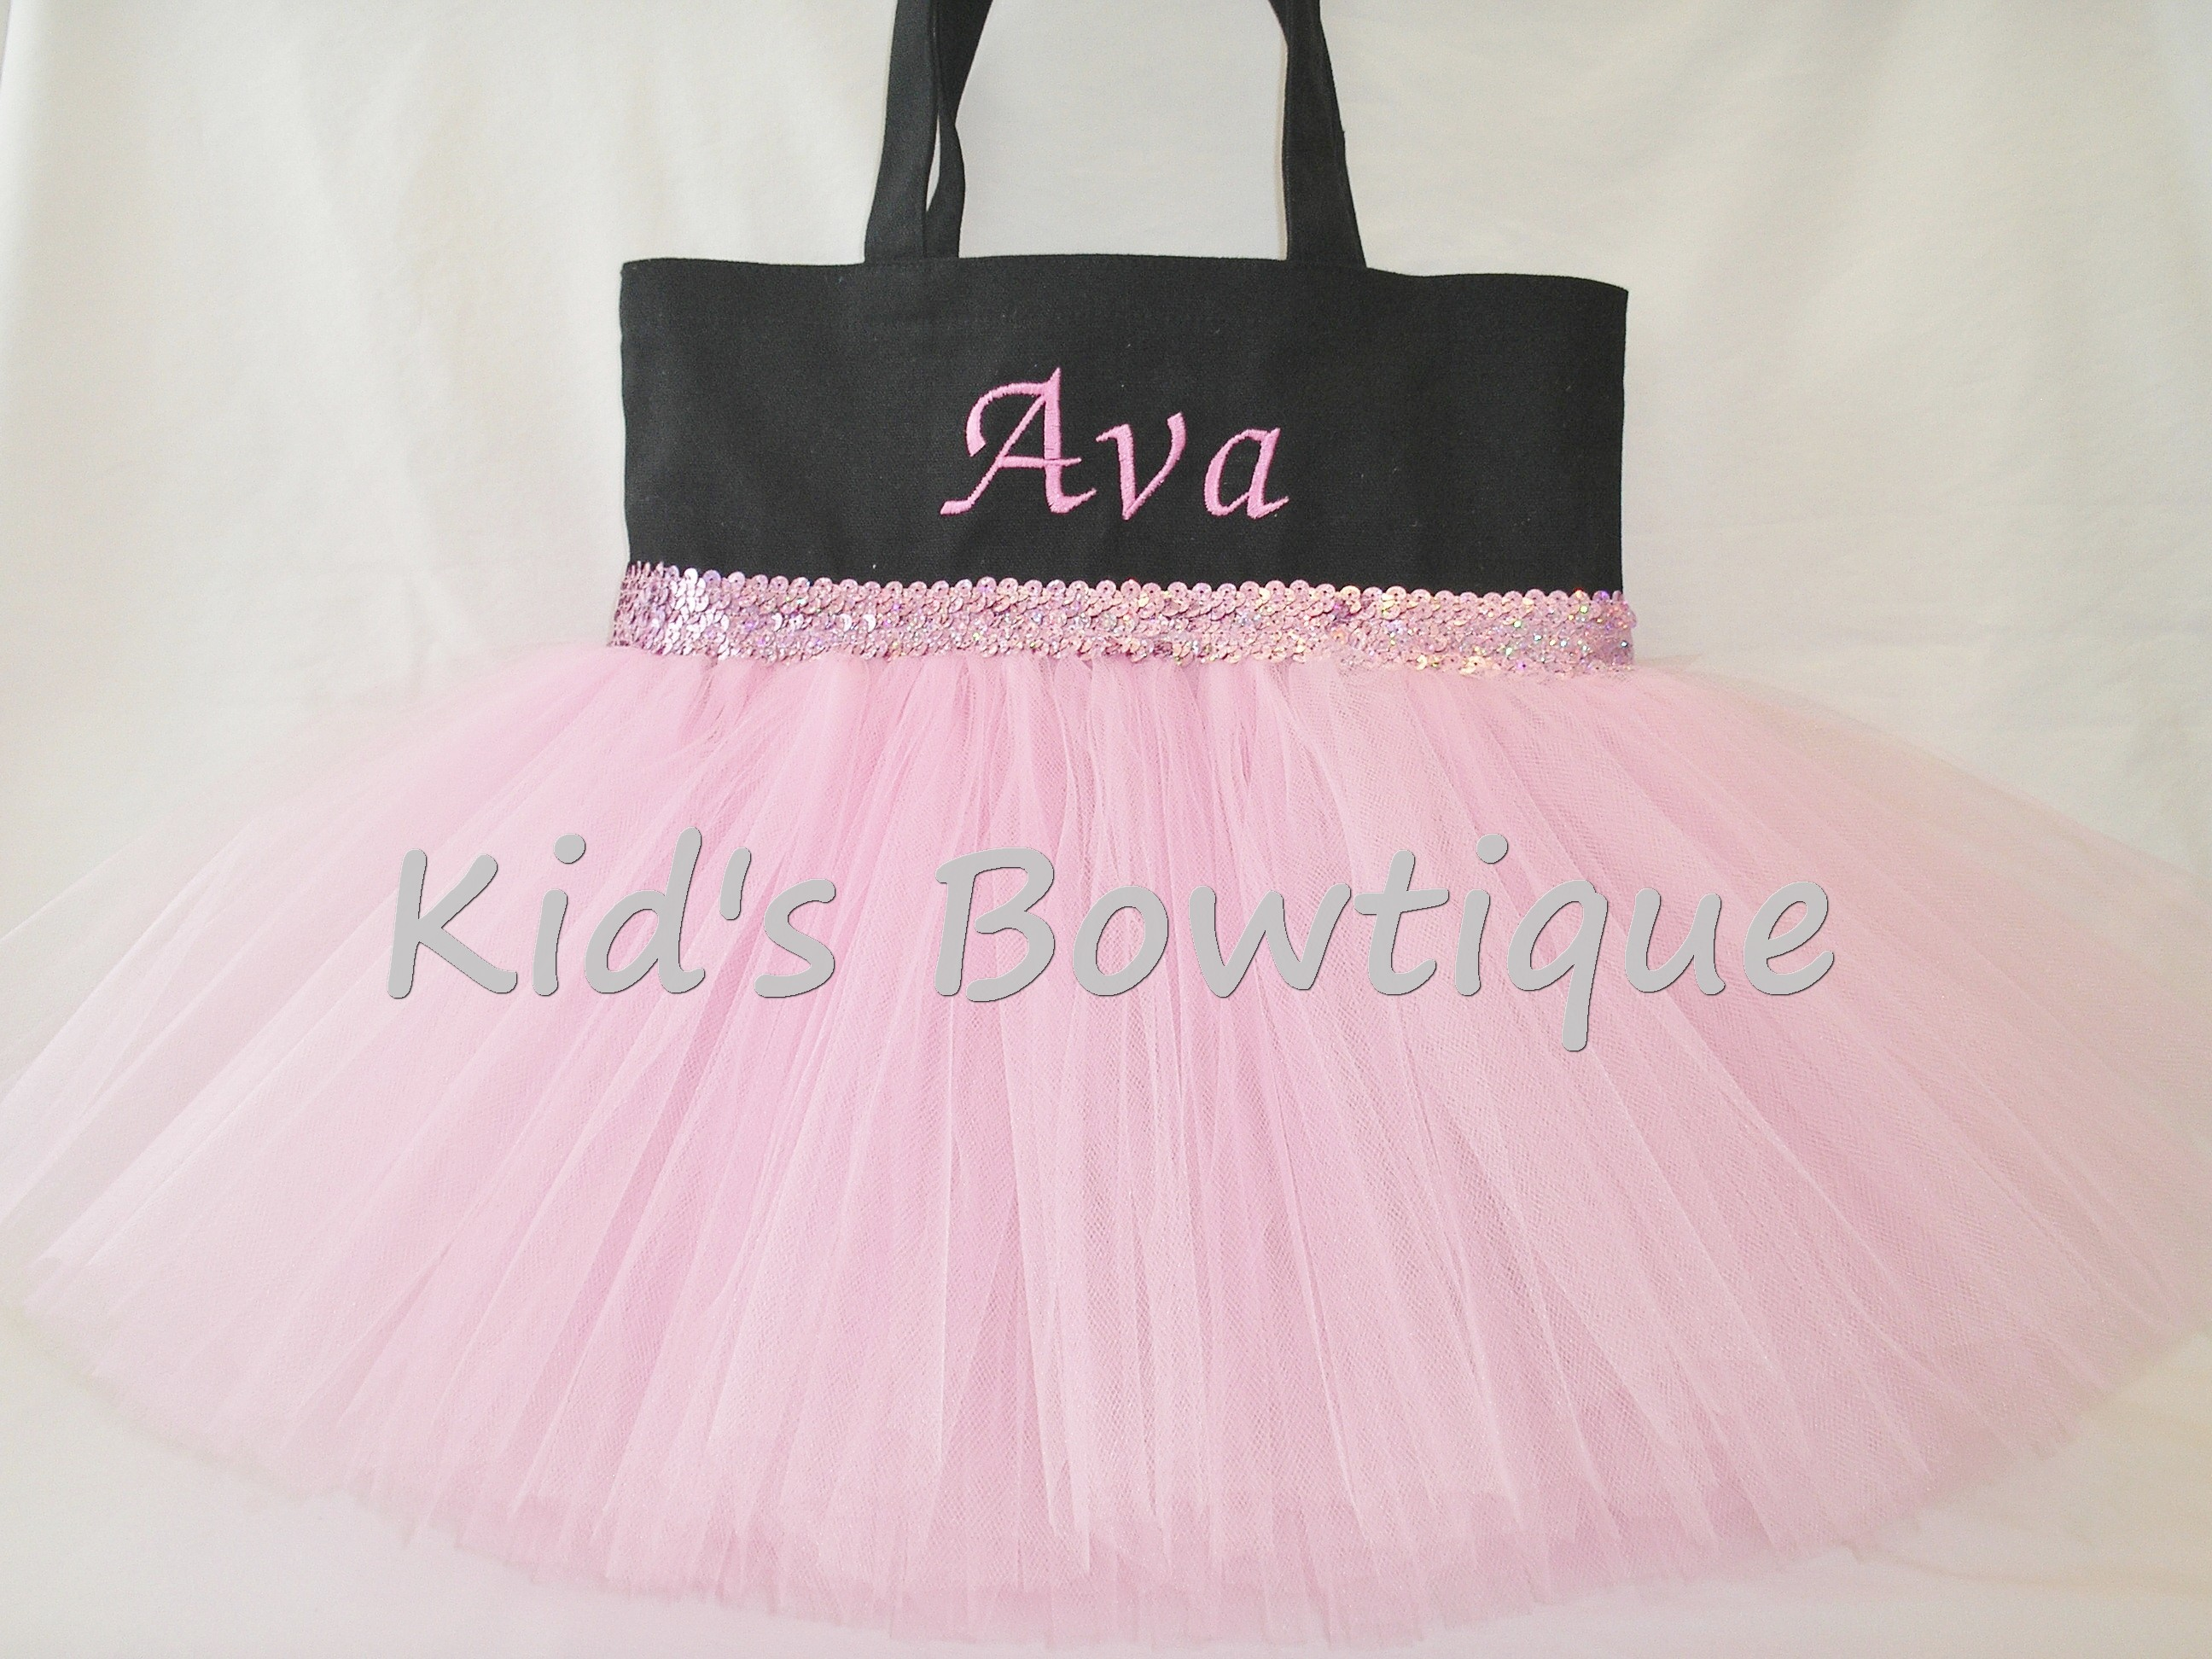 Monogrammed Tutu Tote Bag - ttb18 Black with Pink/Lavender Sequins